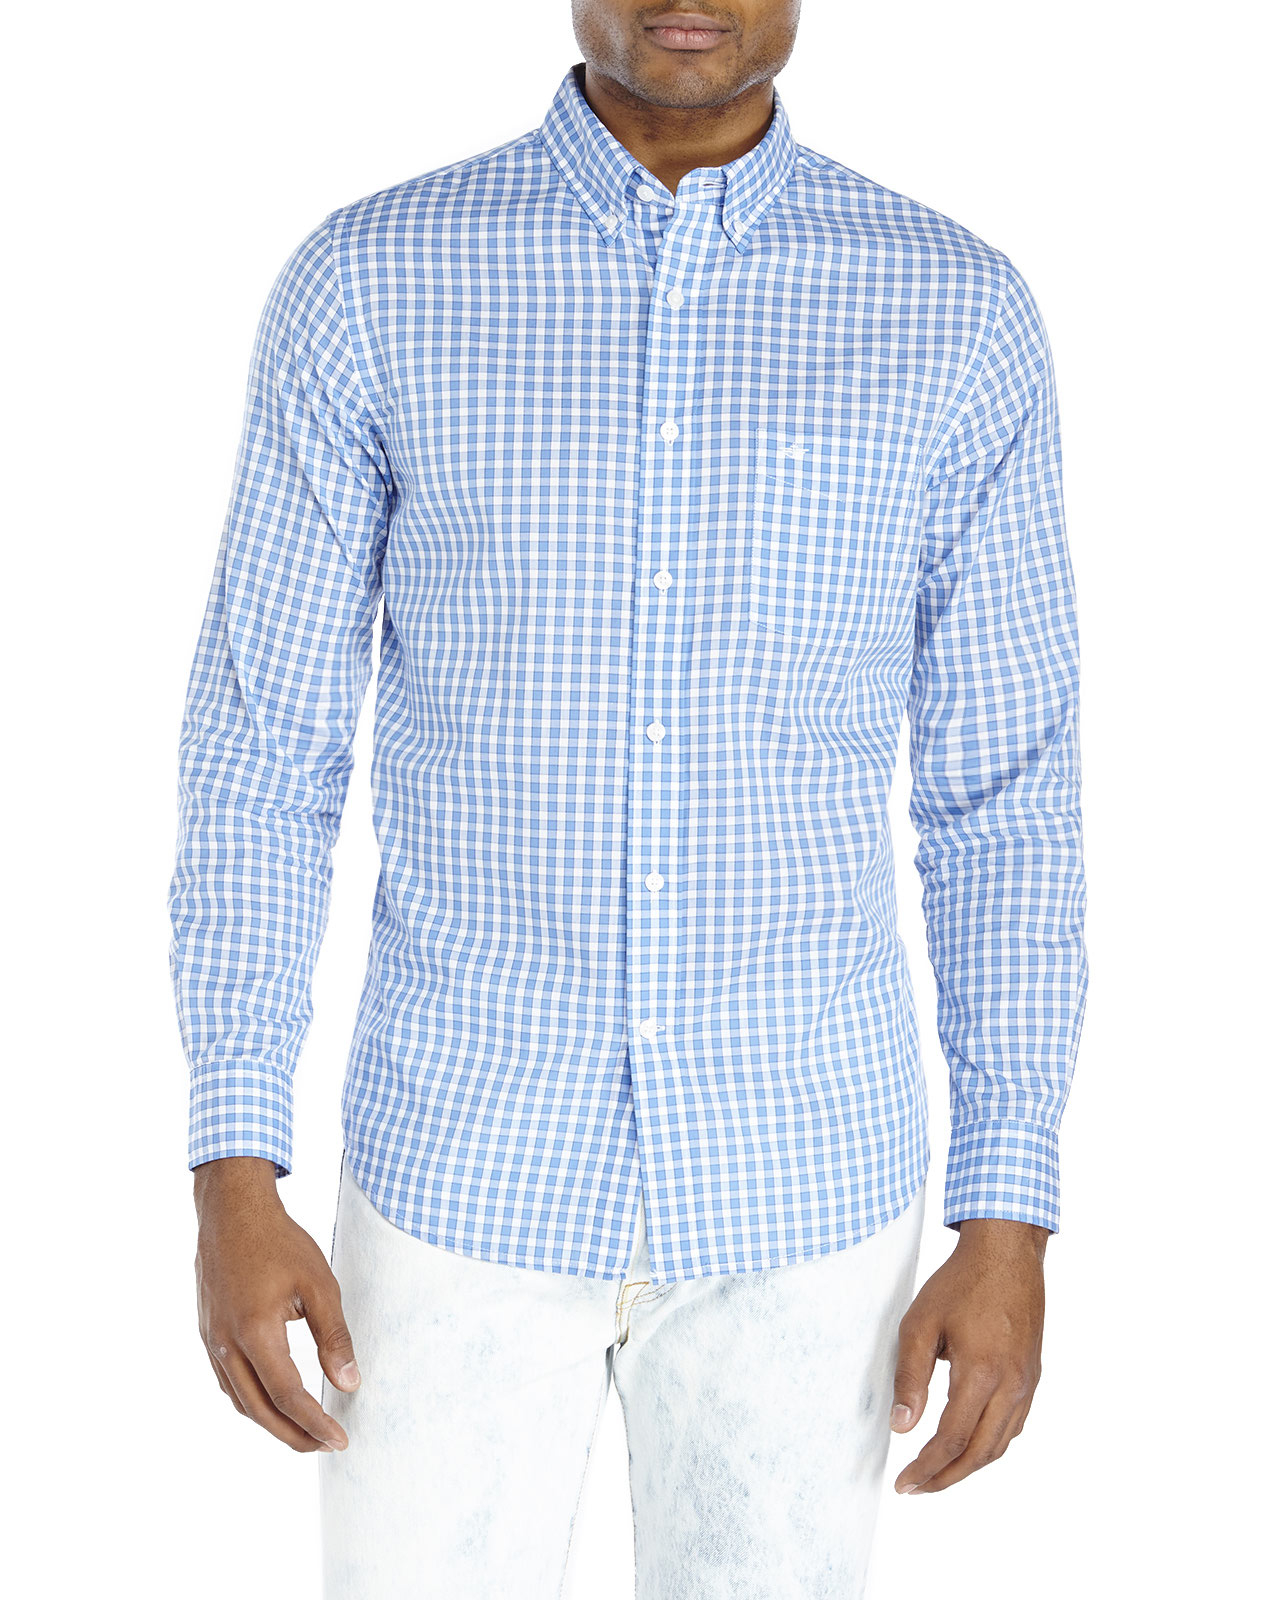 Dockers Gingham Button Down Shirt In Blue For Men Lyst